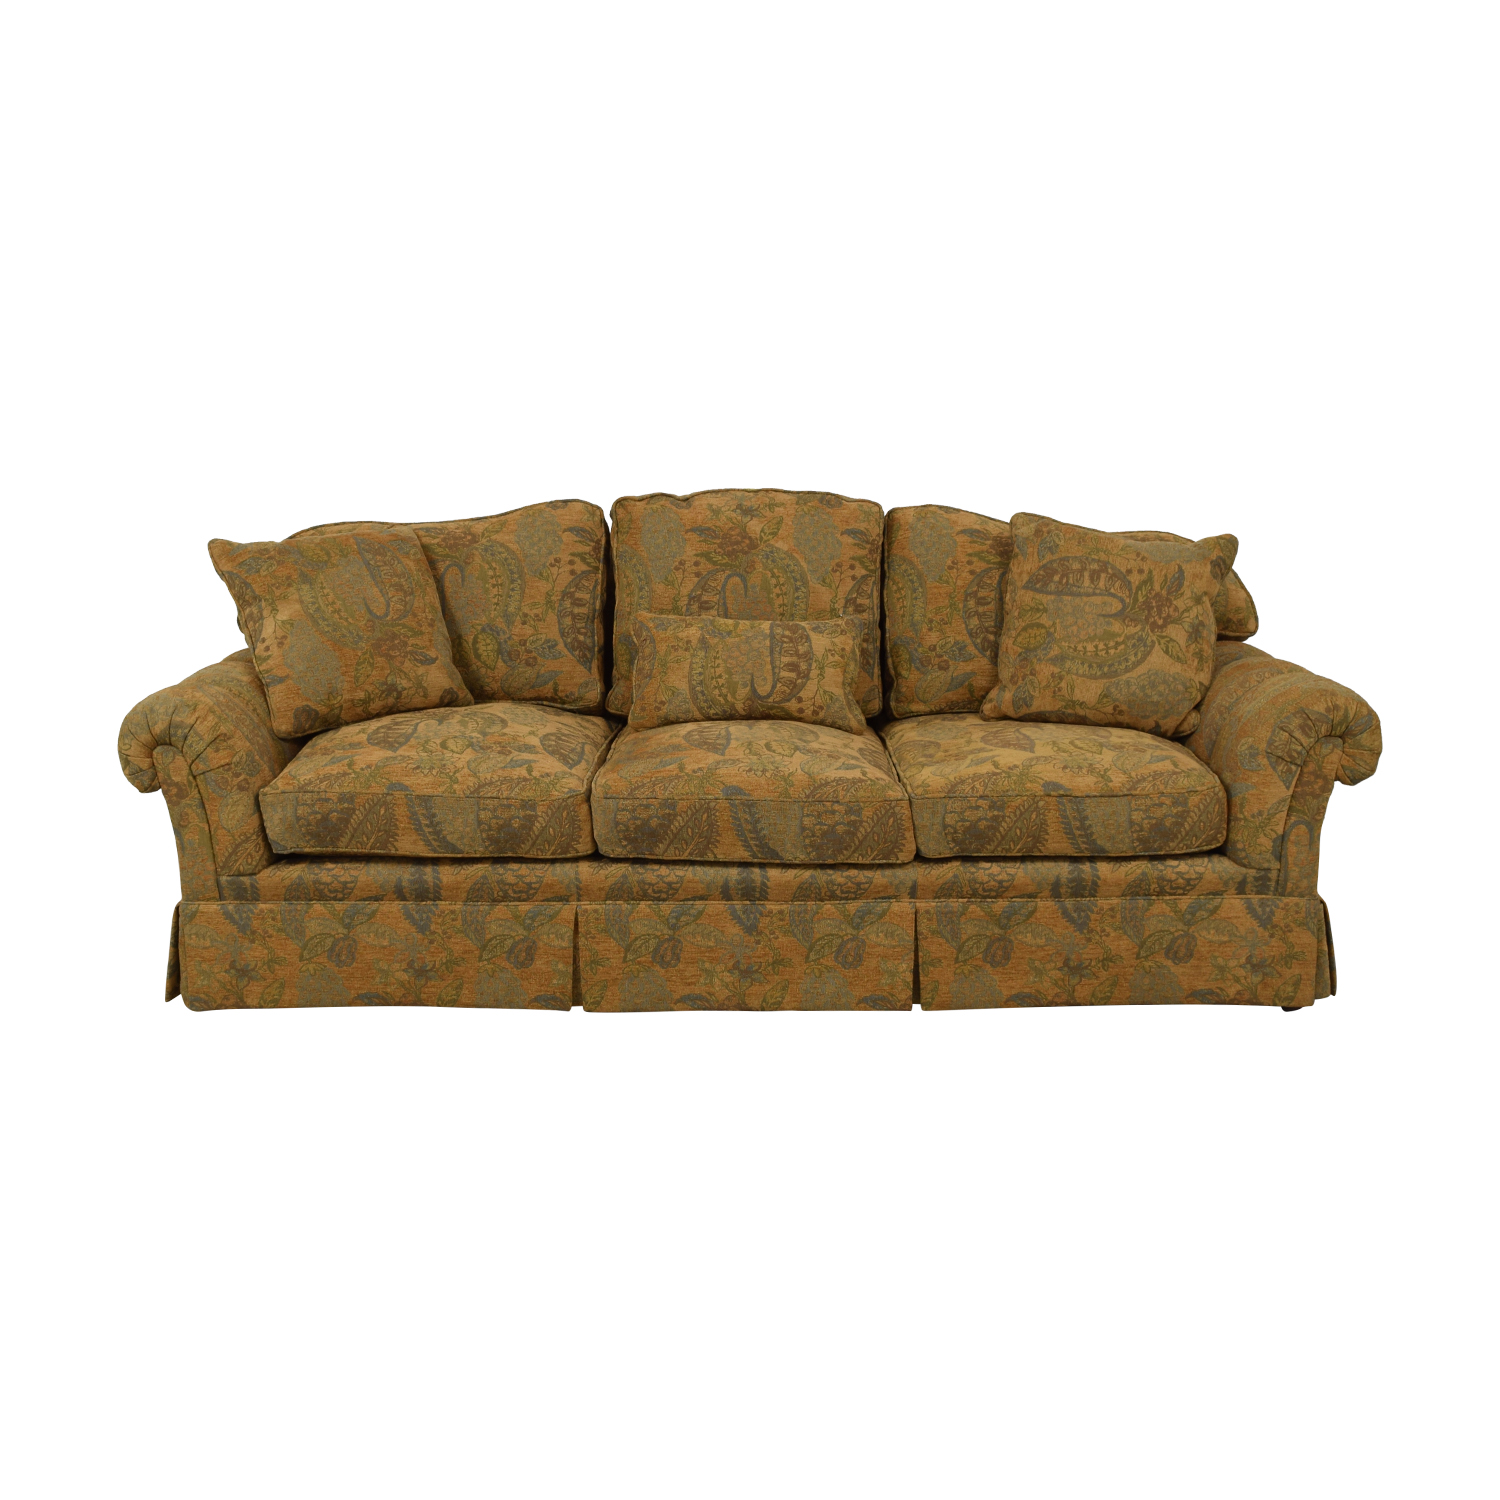 TRS Furniture Three-Seater Sofa sale